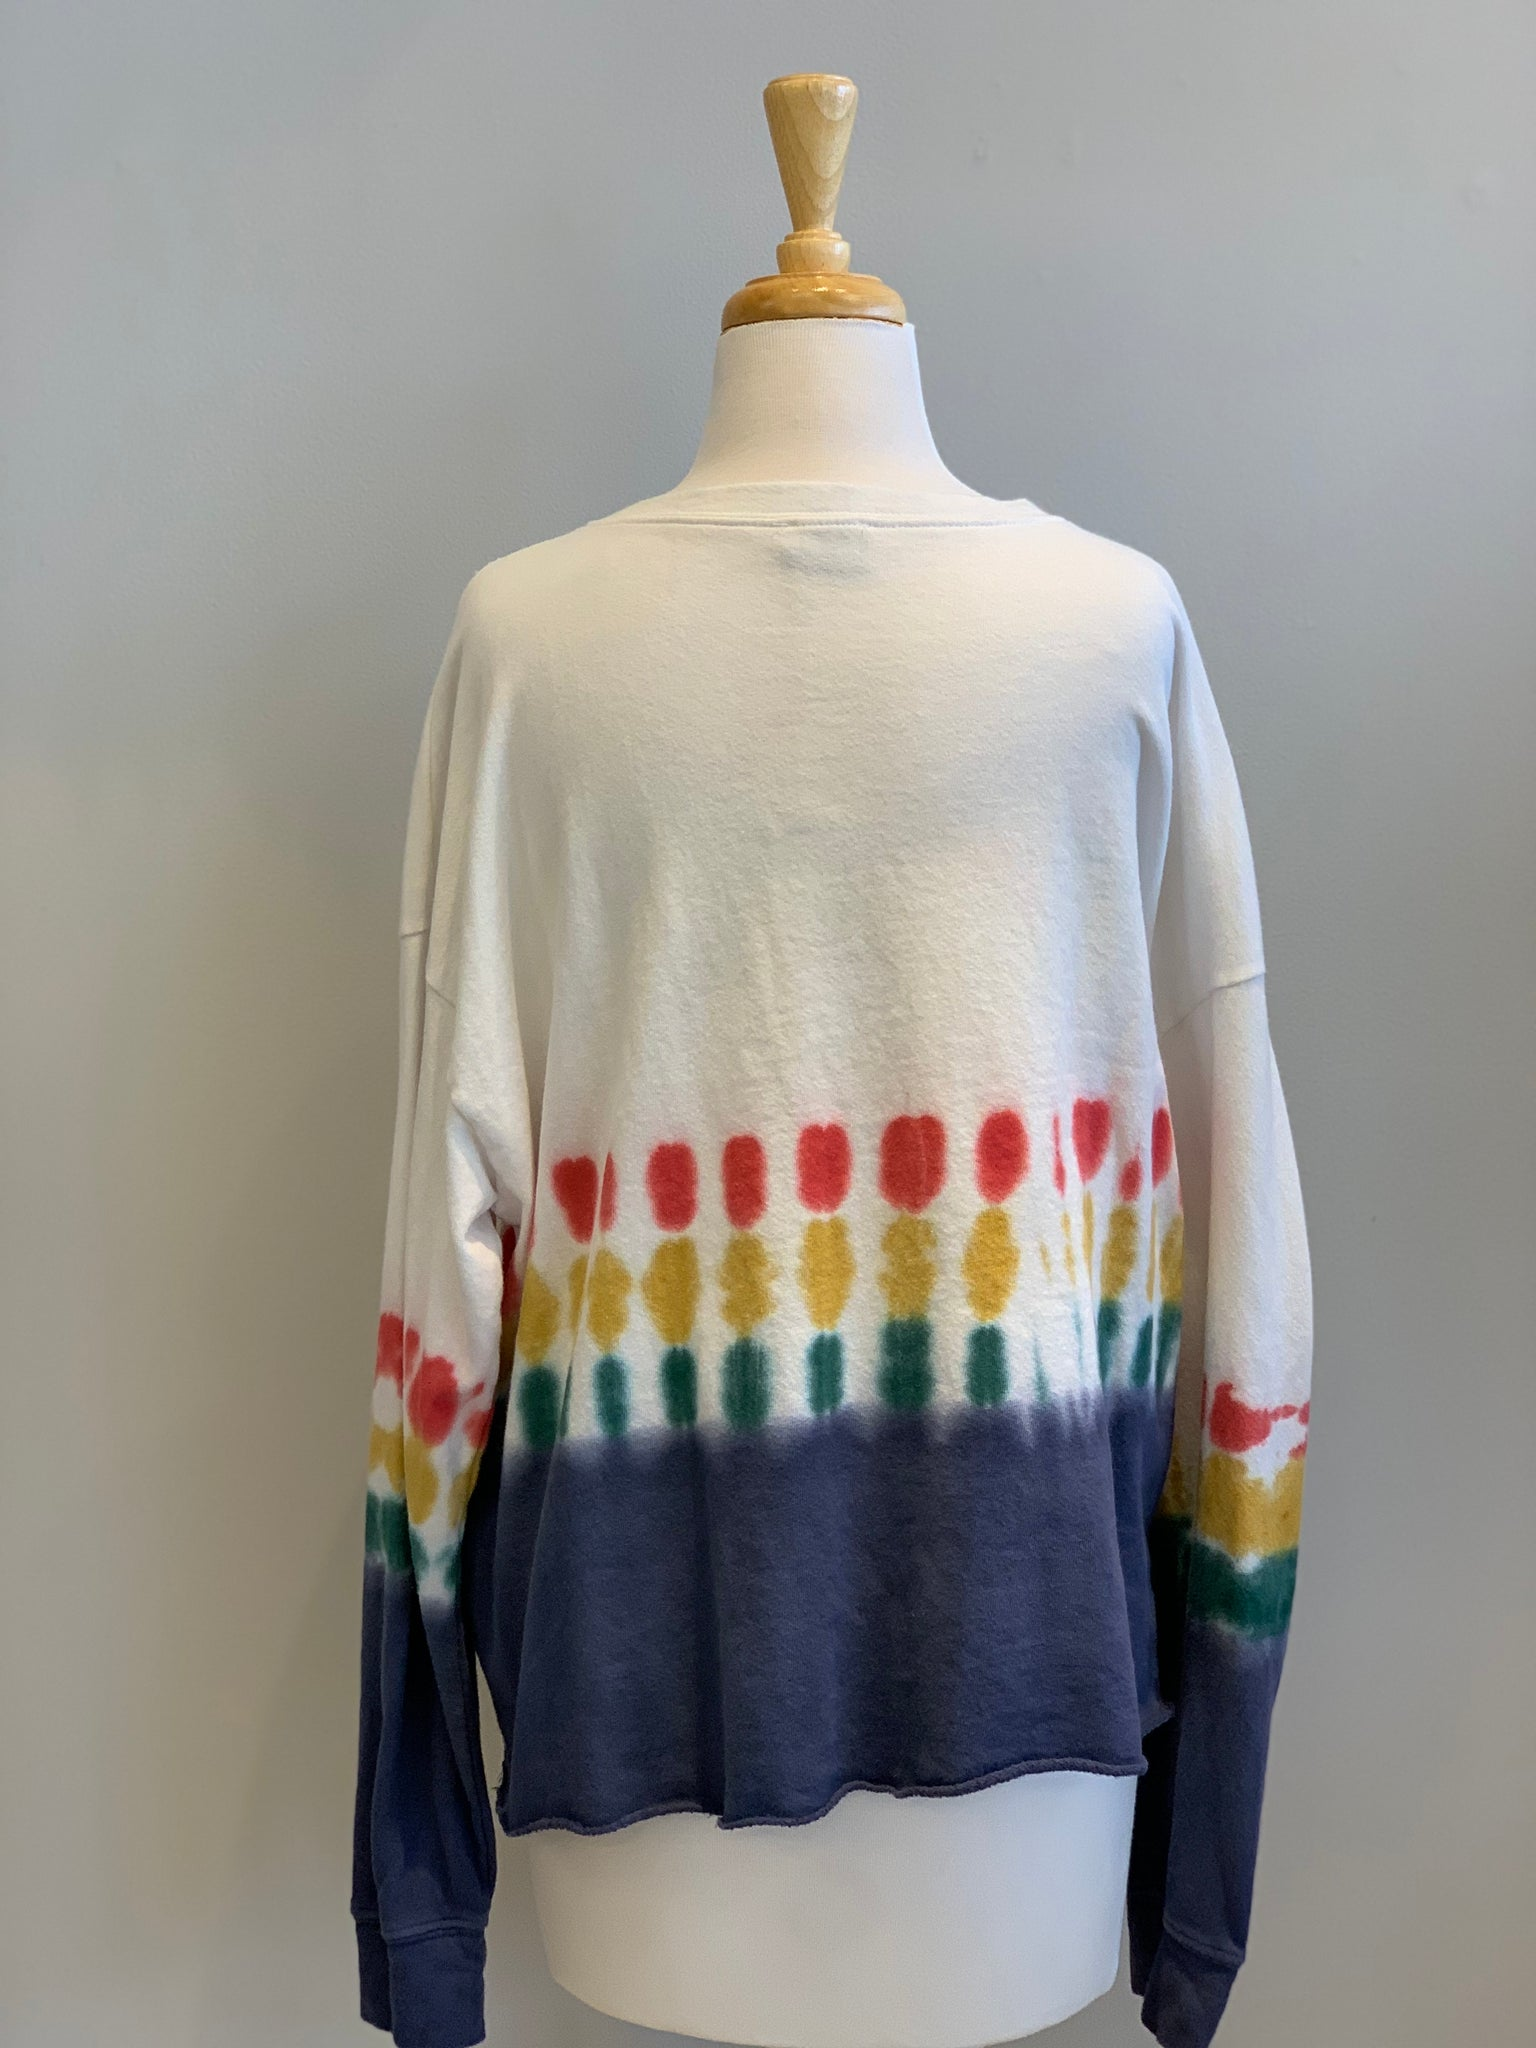 Blank Paige Tie-dye Sweatshirt - Showroom56